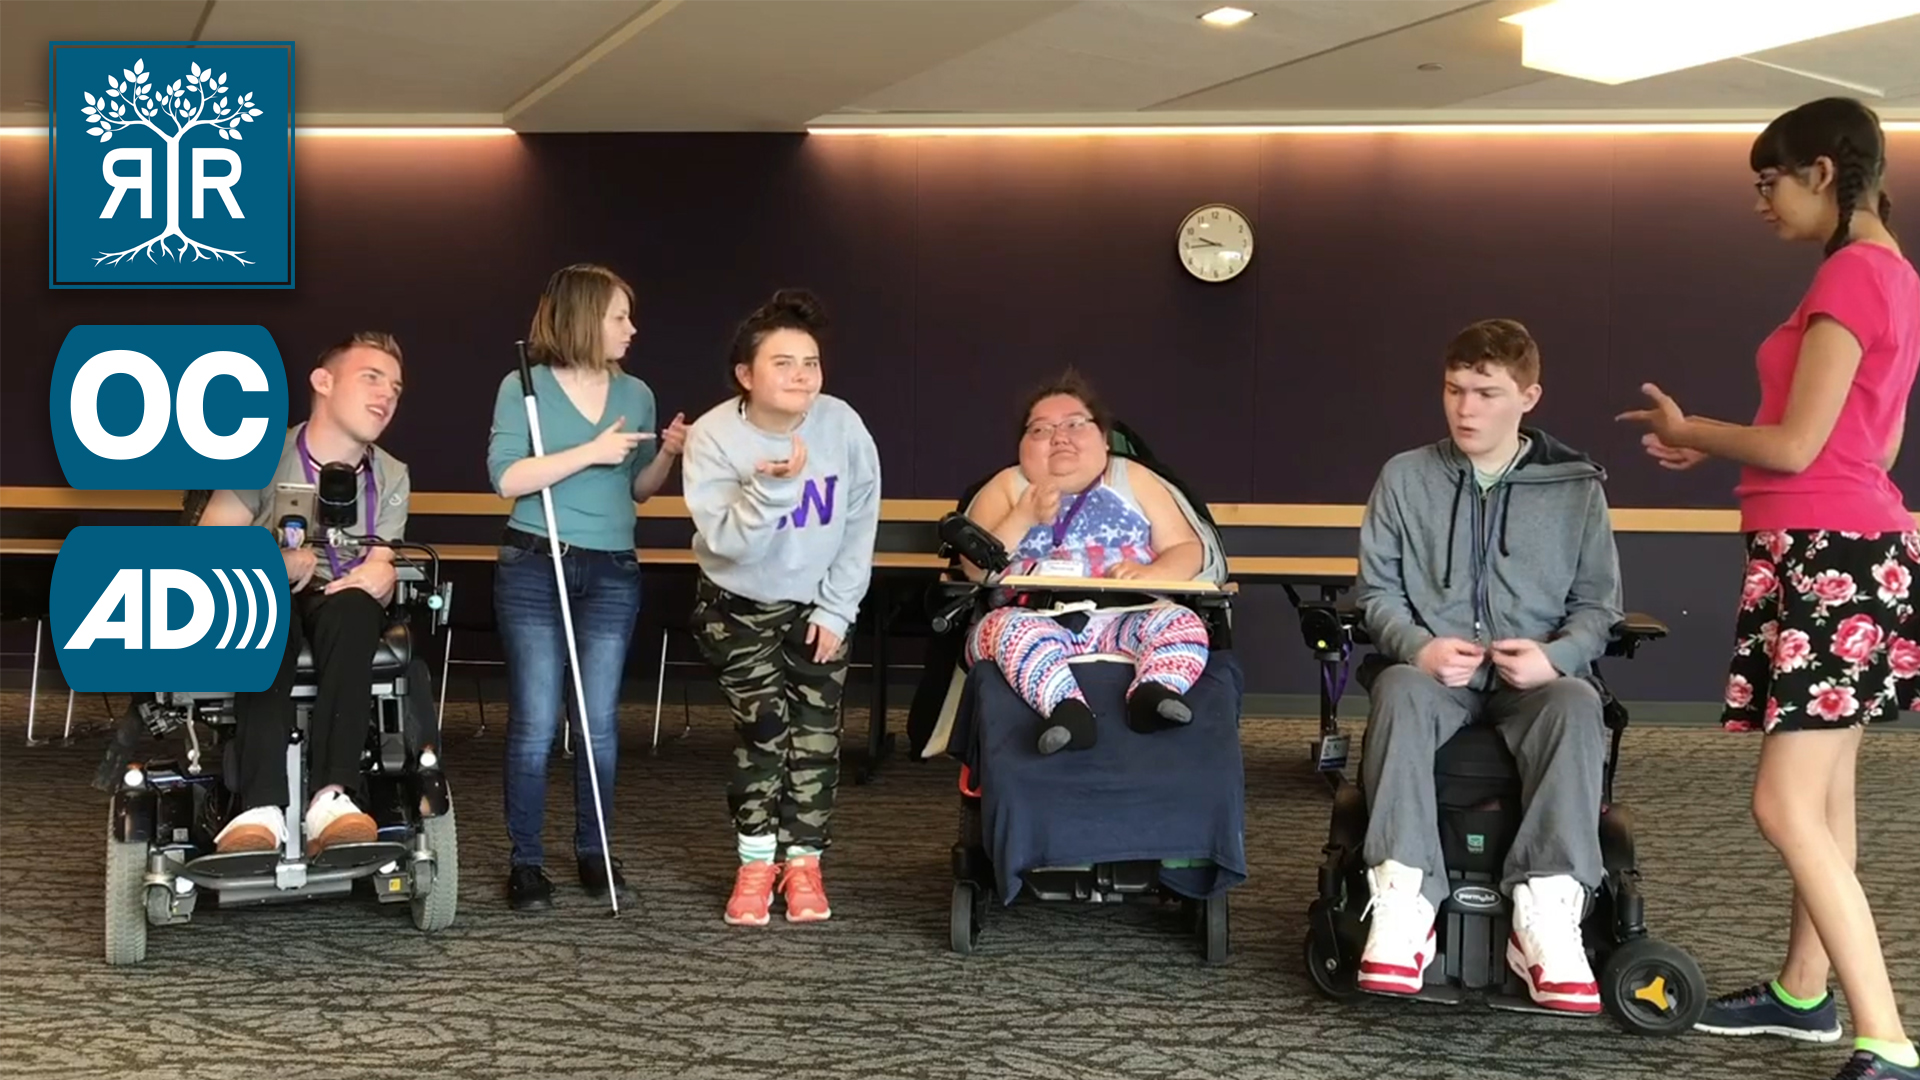 A row of students with mixed disabilities looking looking confused and shrugging their shoulders.